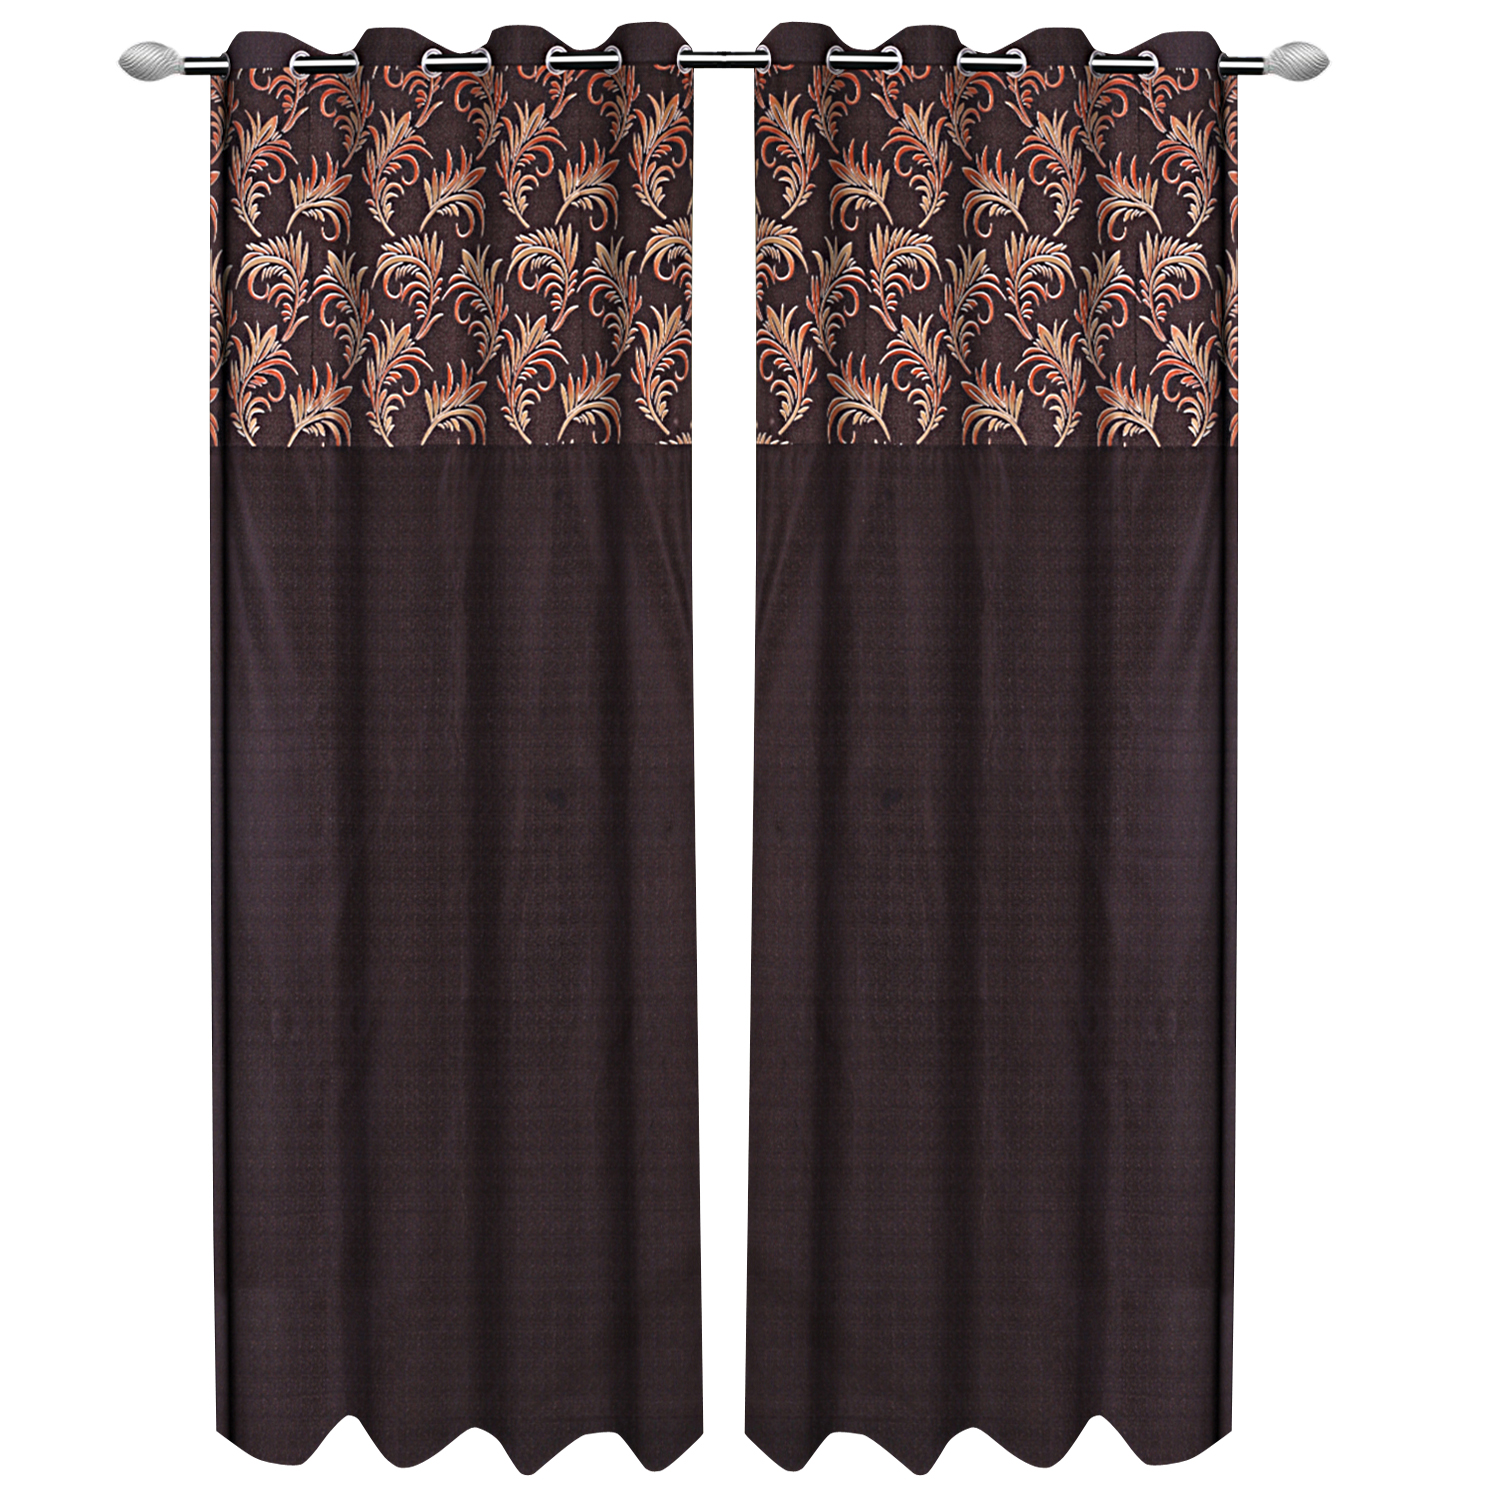 Kuber Industries Leaf Design 4 Pieces Polyester Eyelet Door Curtain 7 Feet (Coffee)-CTKTC14277